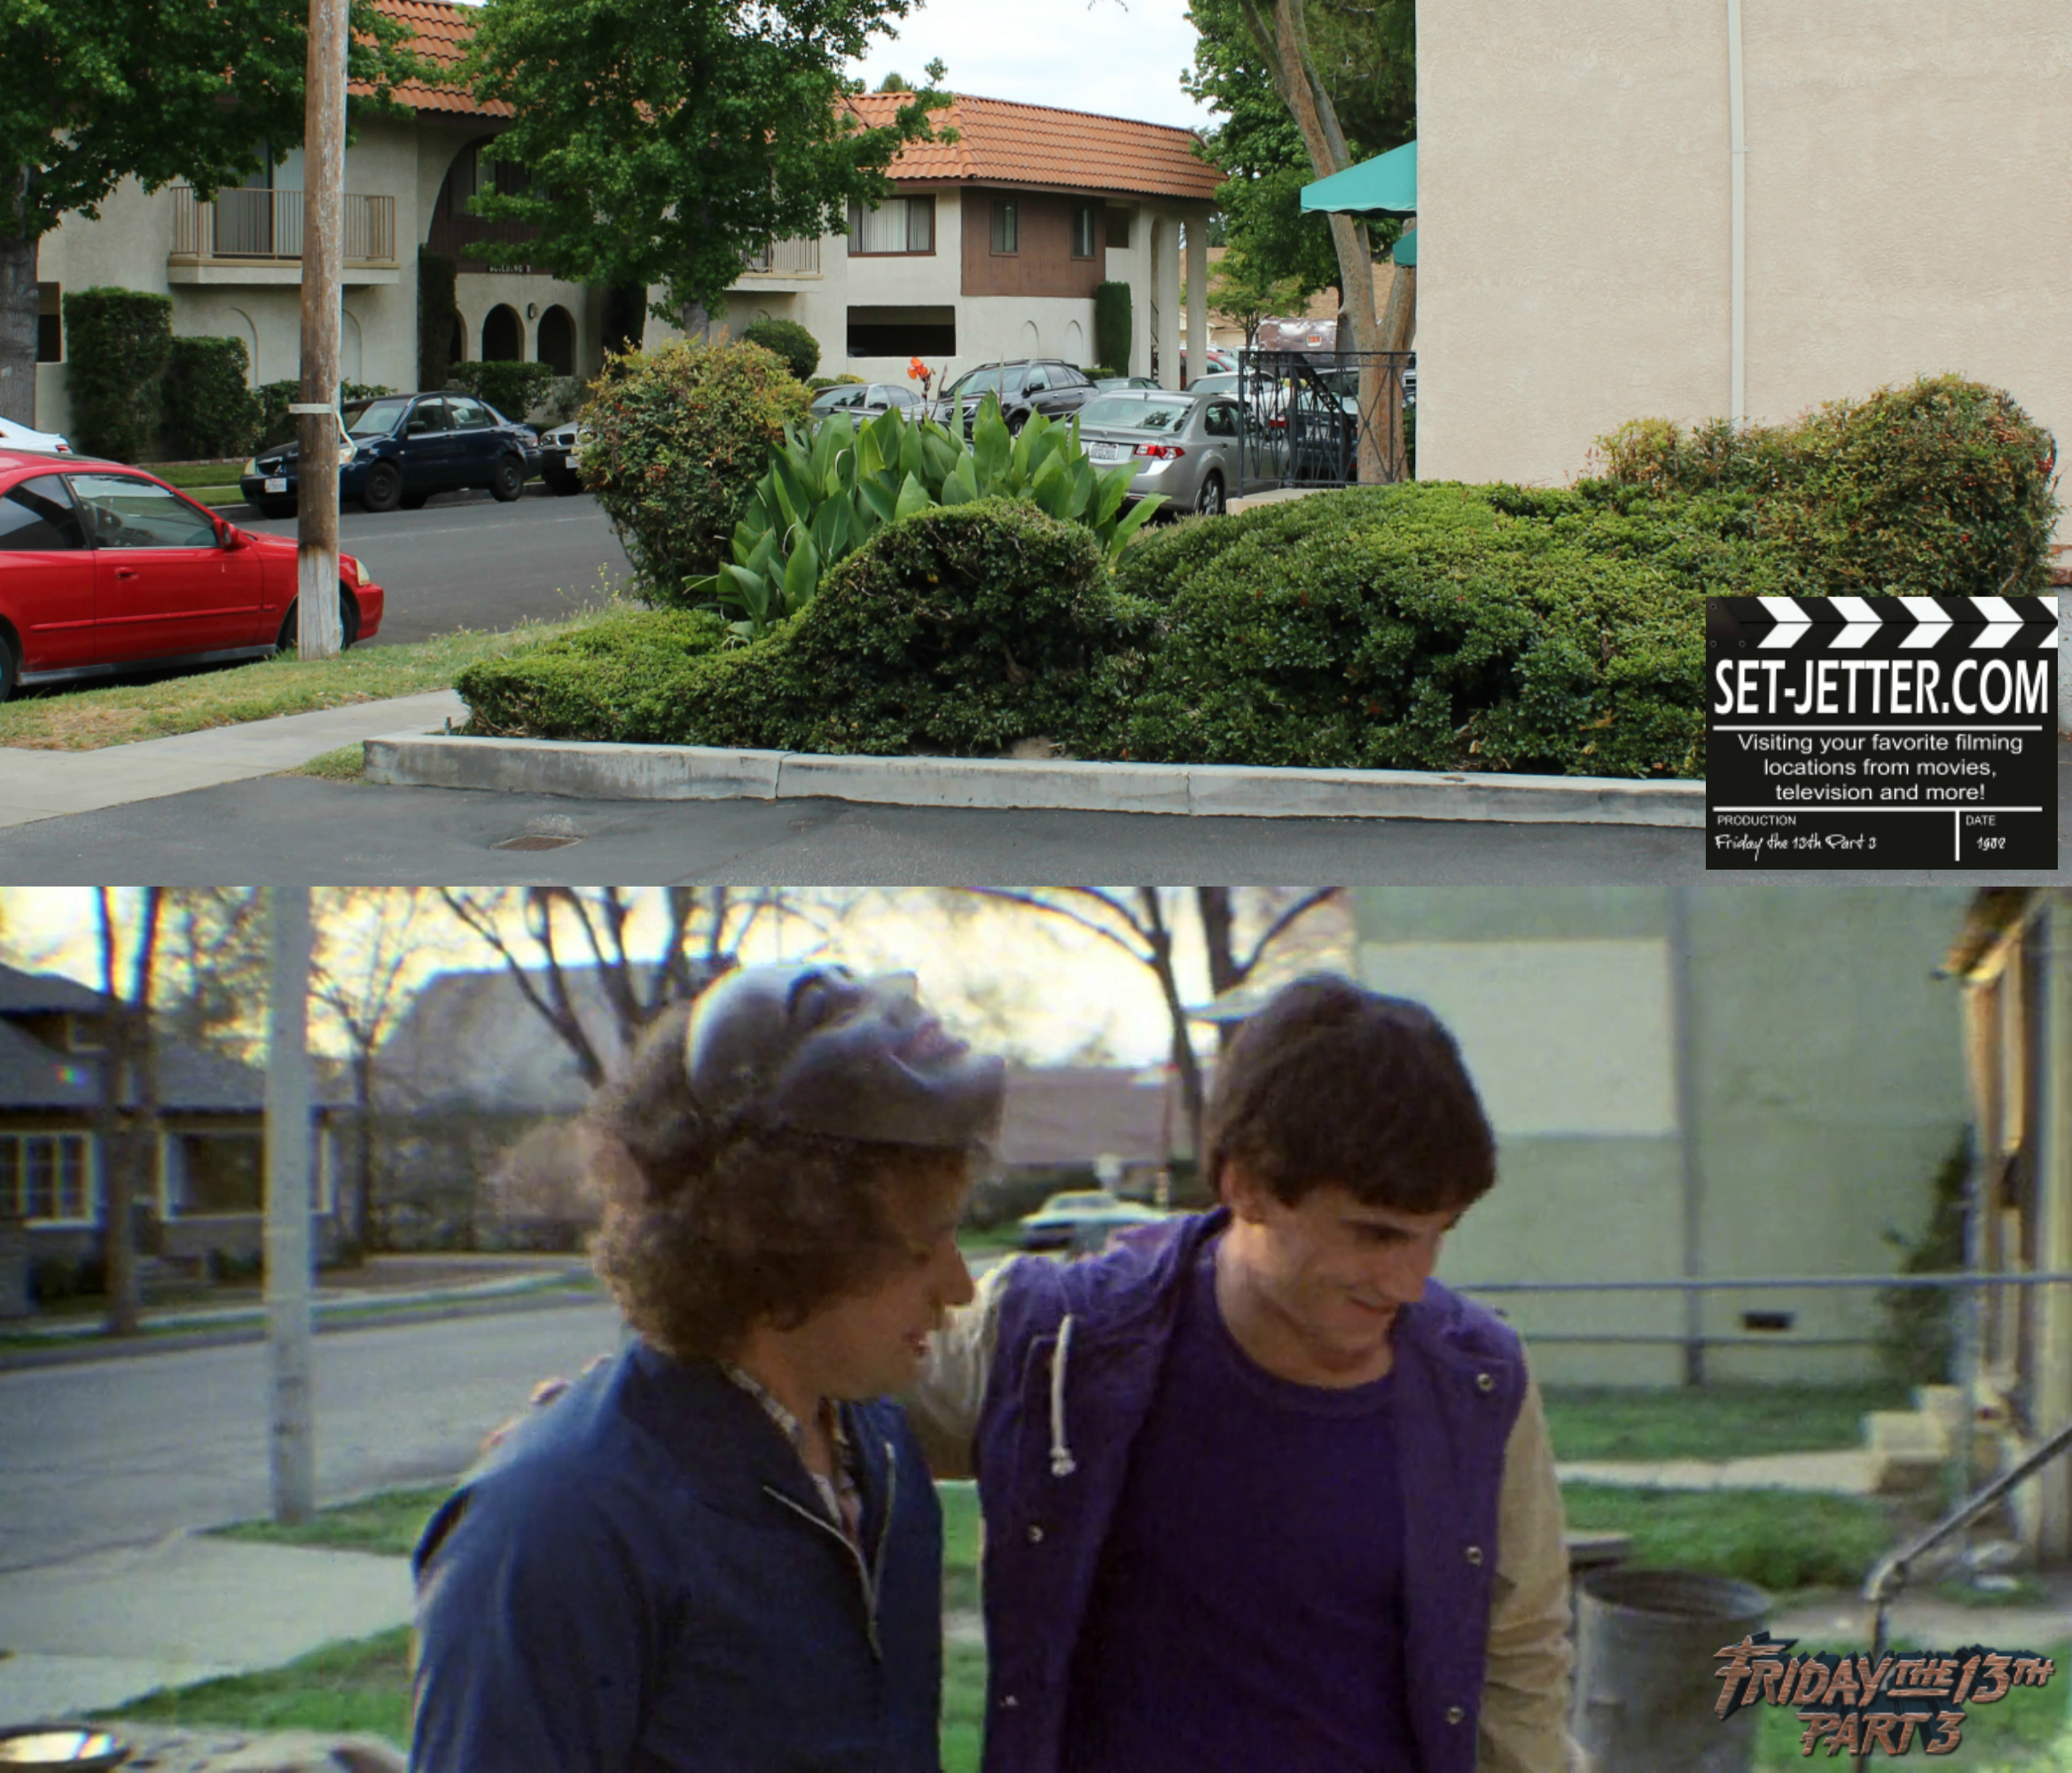 Friday the 13th Part 3 comparison 29.jpg